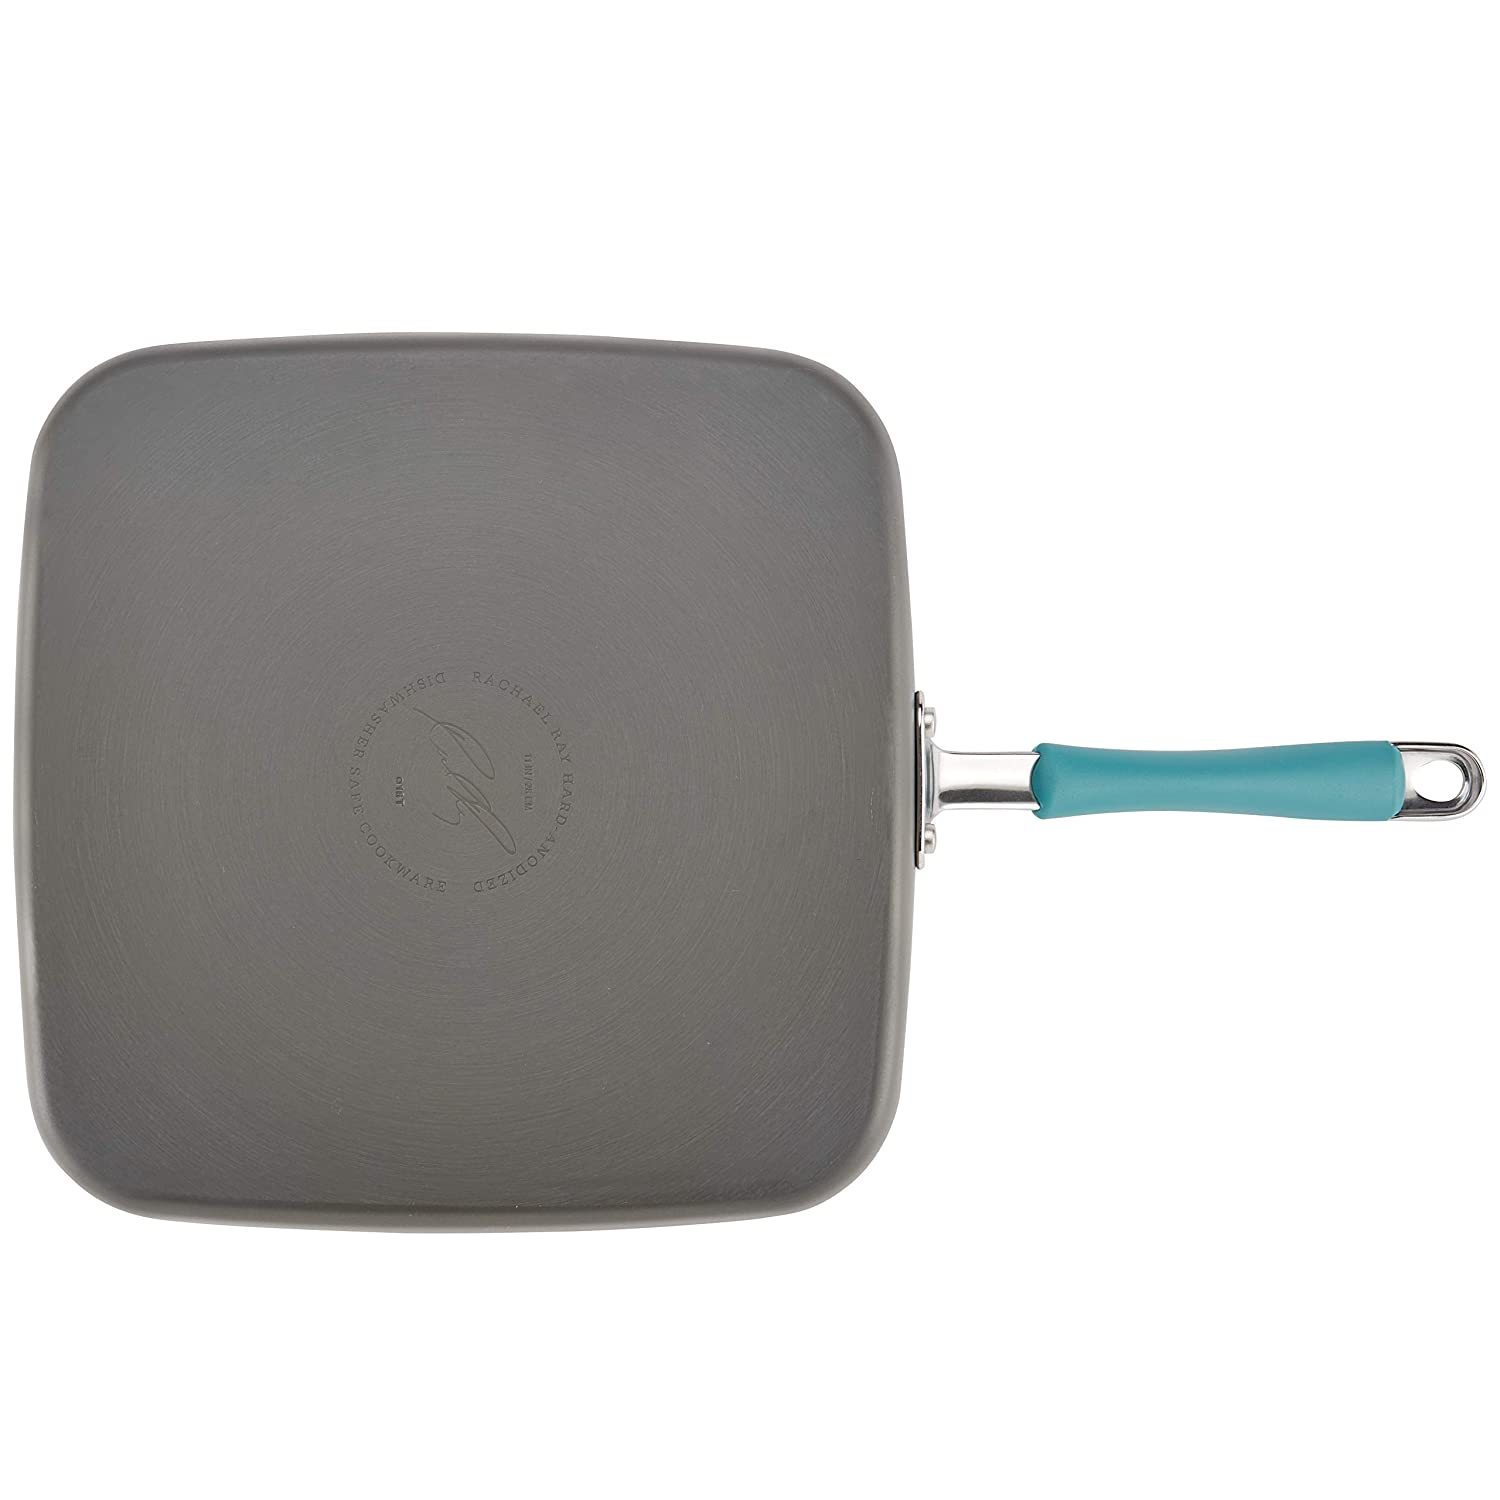 Rachael Ray 87659 Cucina Hard-Anodized Nonstick Shallow Square Griddle Gray with Agave Blue Handle Small